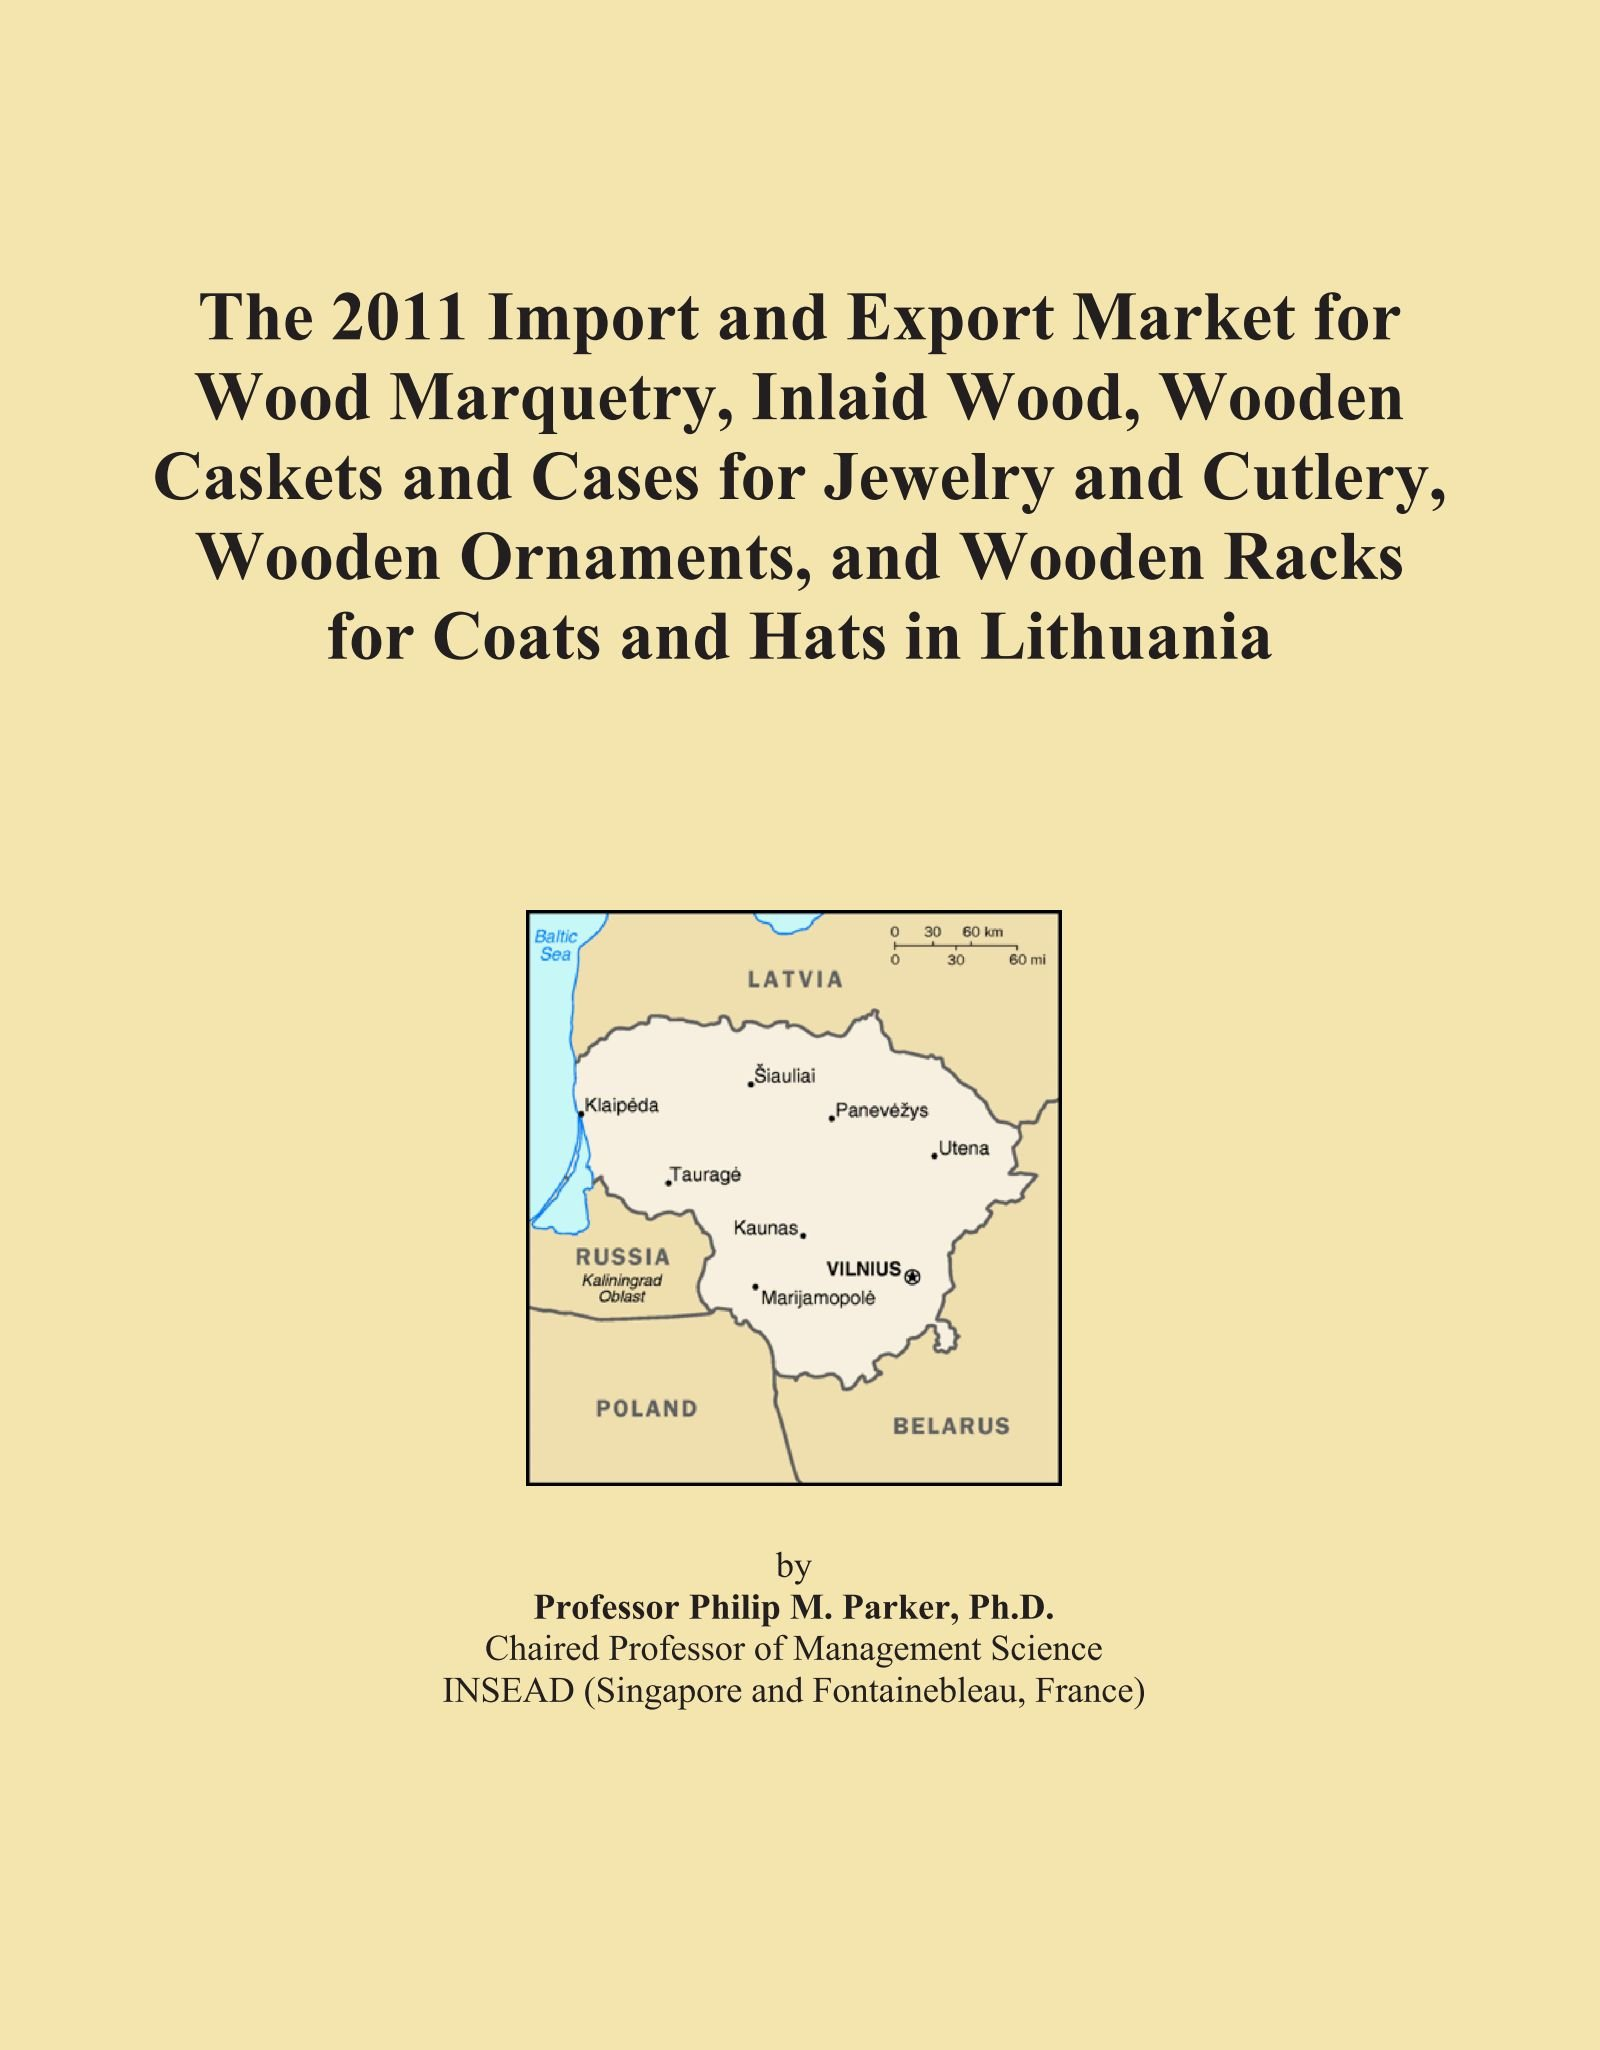 The 2011 Import and Export Market for Wood Marquetry, Inlaid Wood, Wooden Caskets and Cases for Jewelry and Cutlery, Wooden Ornaments, and Wooden Racks for Coats and Hats in Lithuania pdf